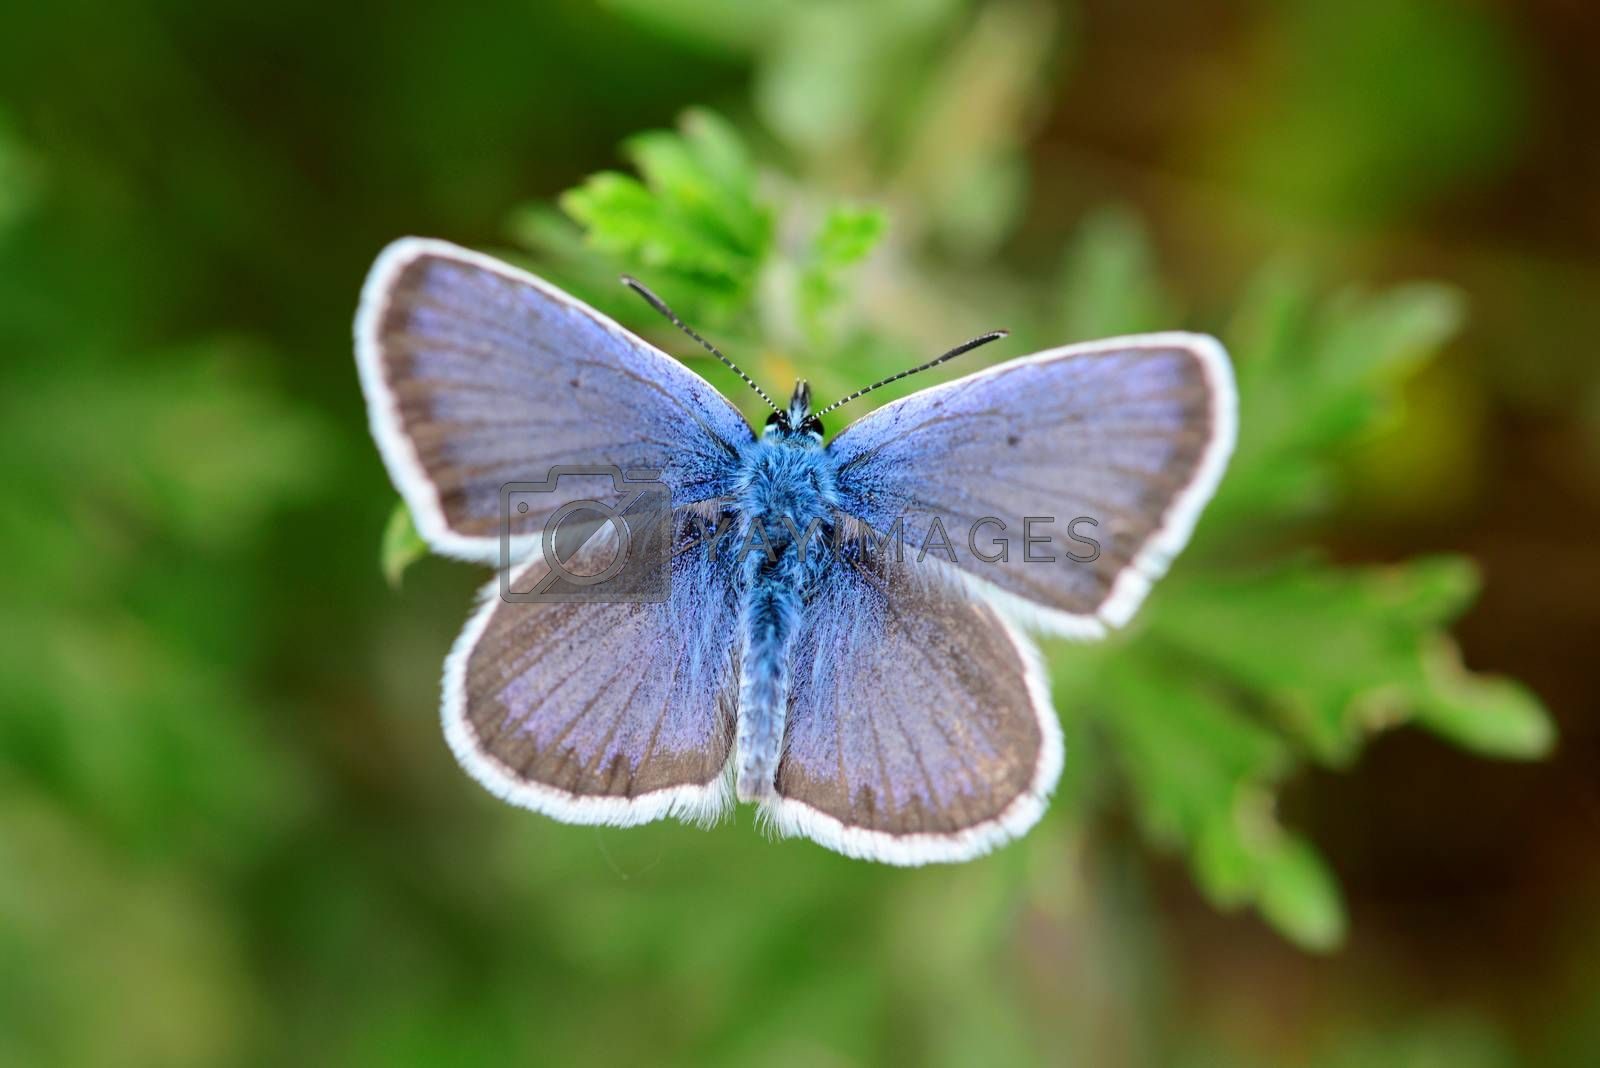 Common blue butterfly close detail over green natural background